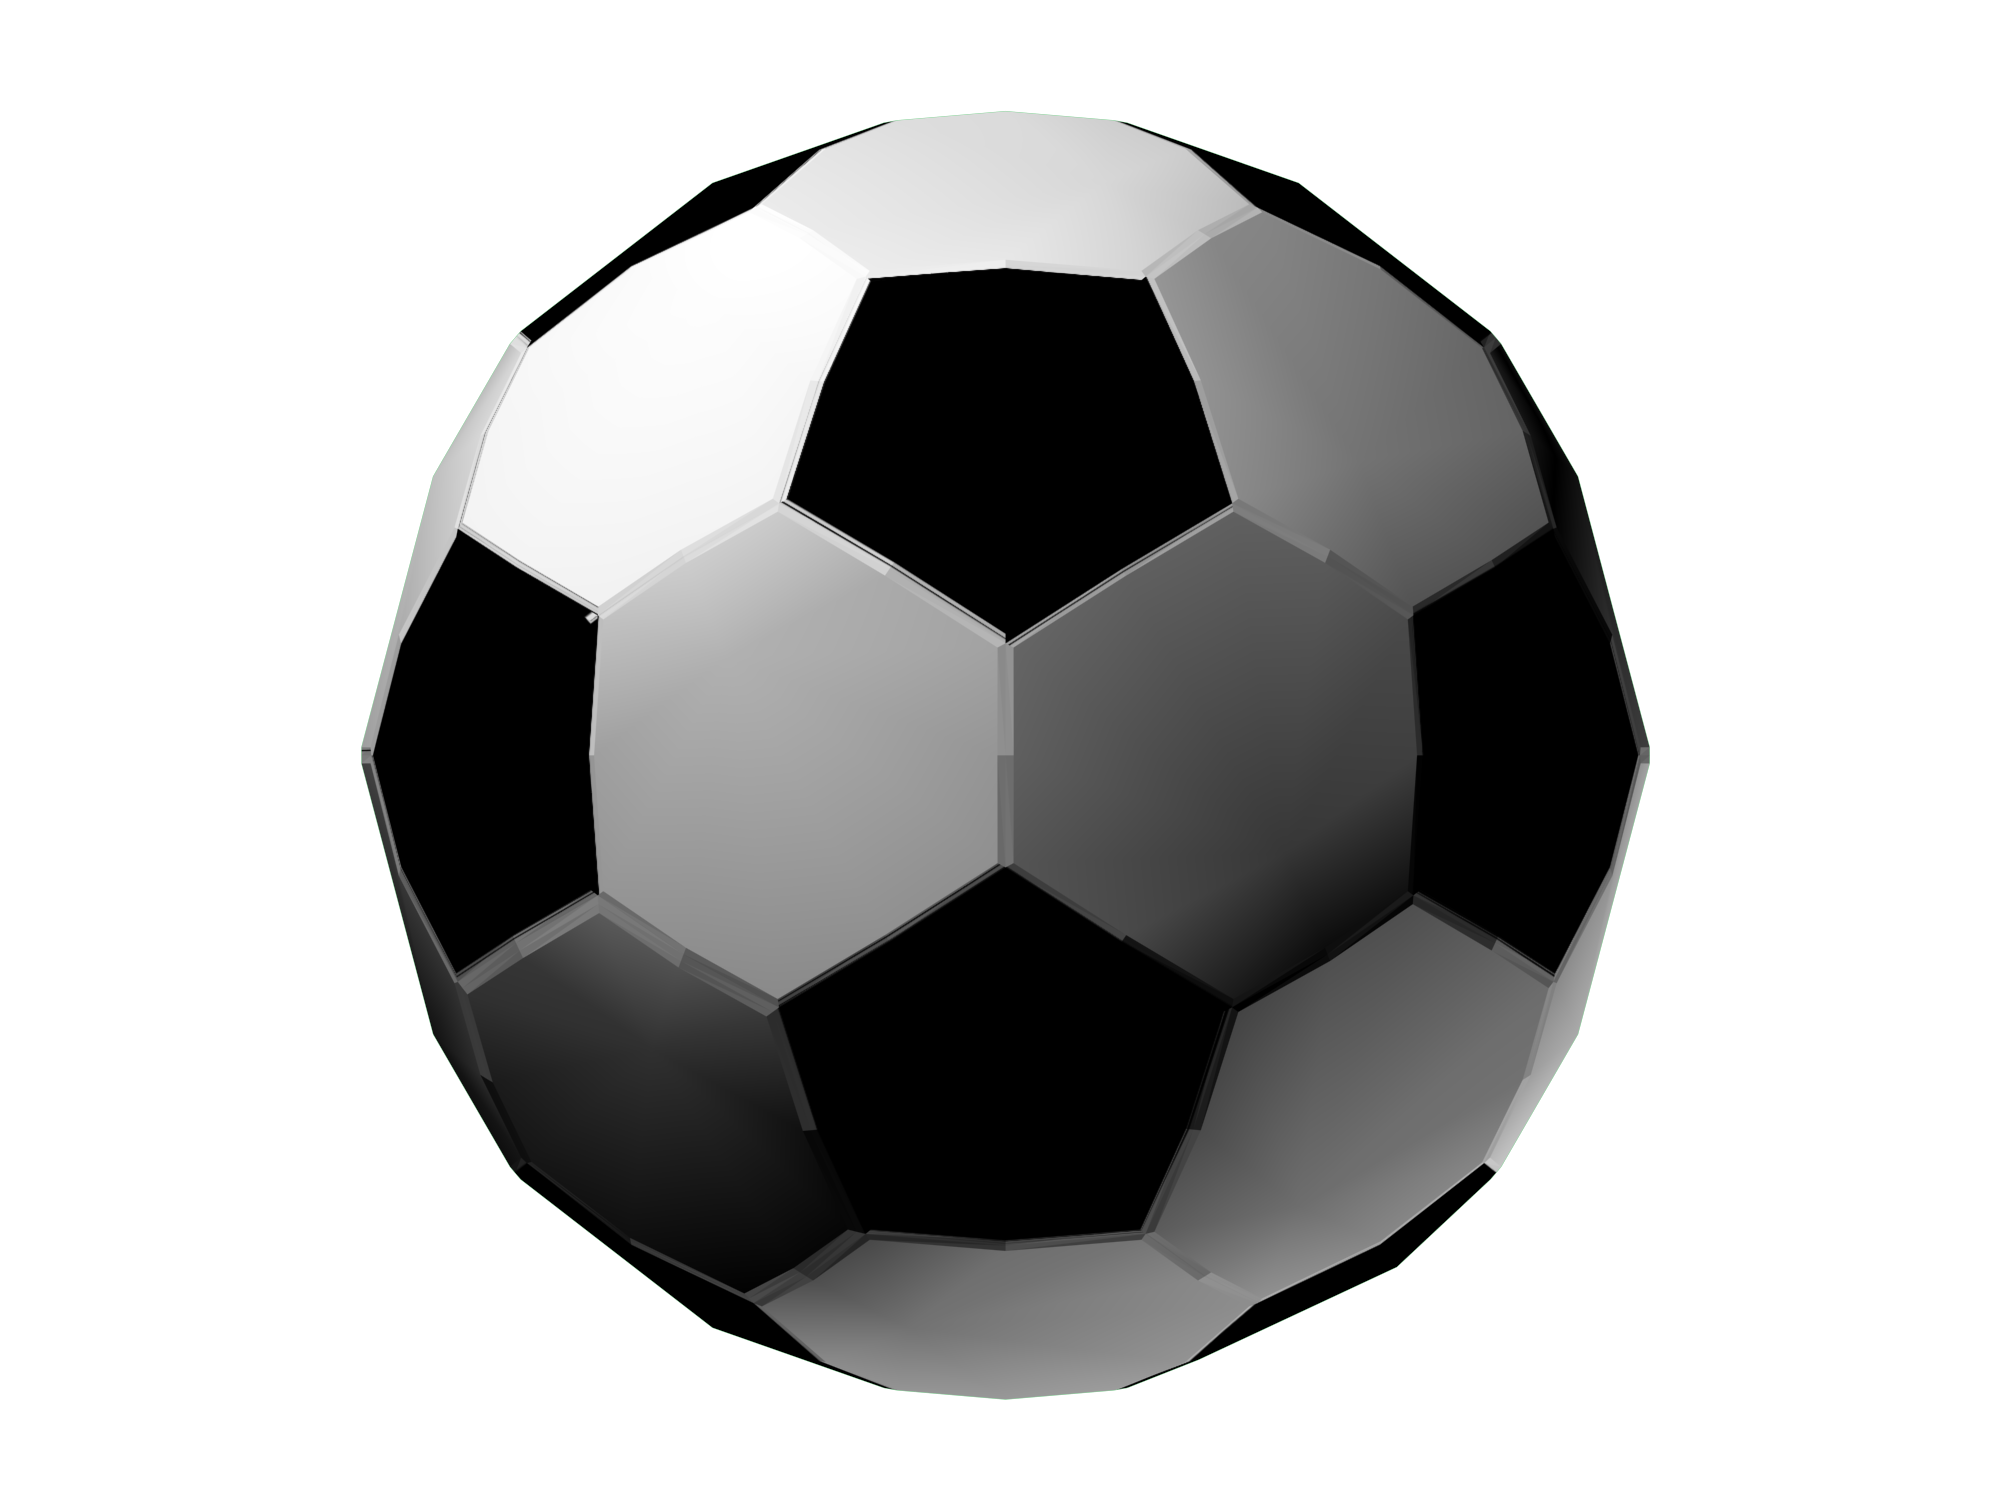 Shadow ball png. Clipart clipartly com